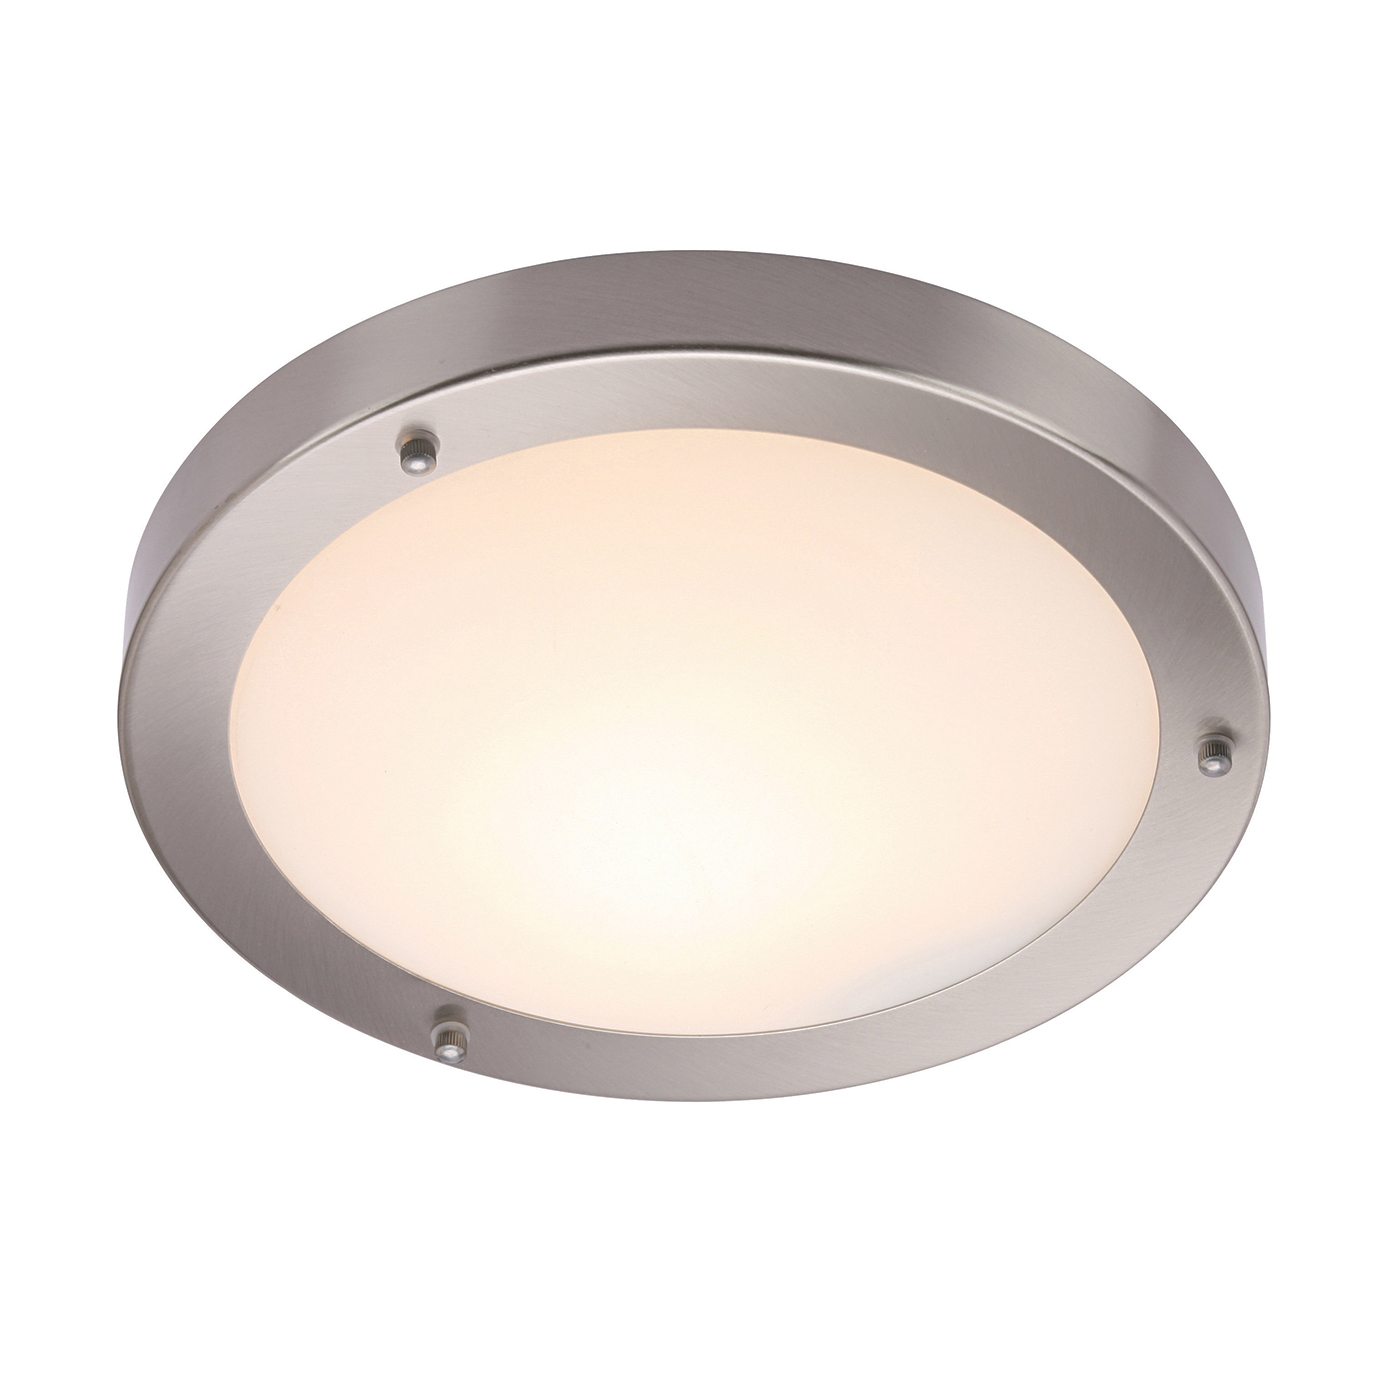 Endon Portico 300mm flush bathroom ceiling light IP44 60W Satin nickel glass Thumbnail 1